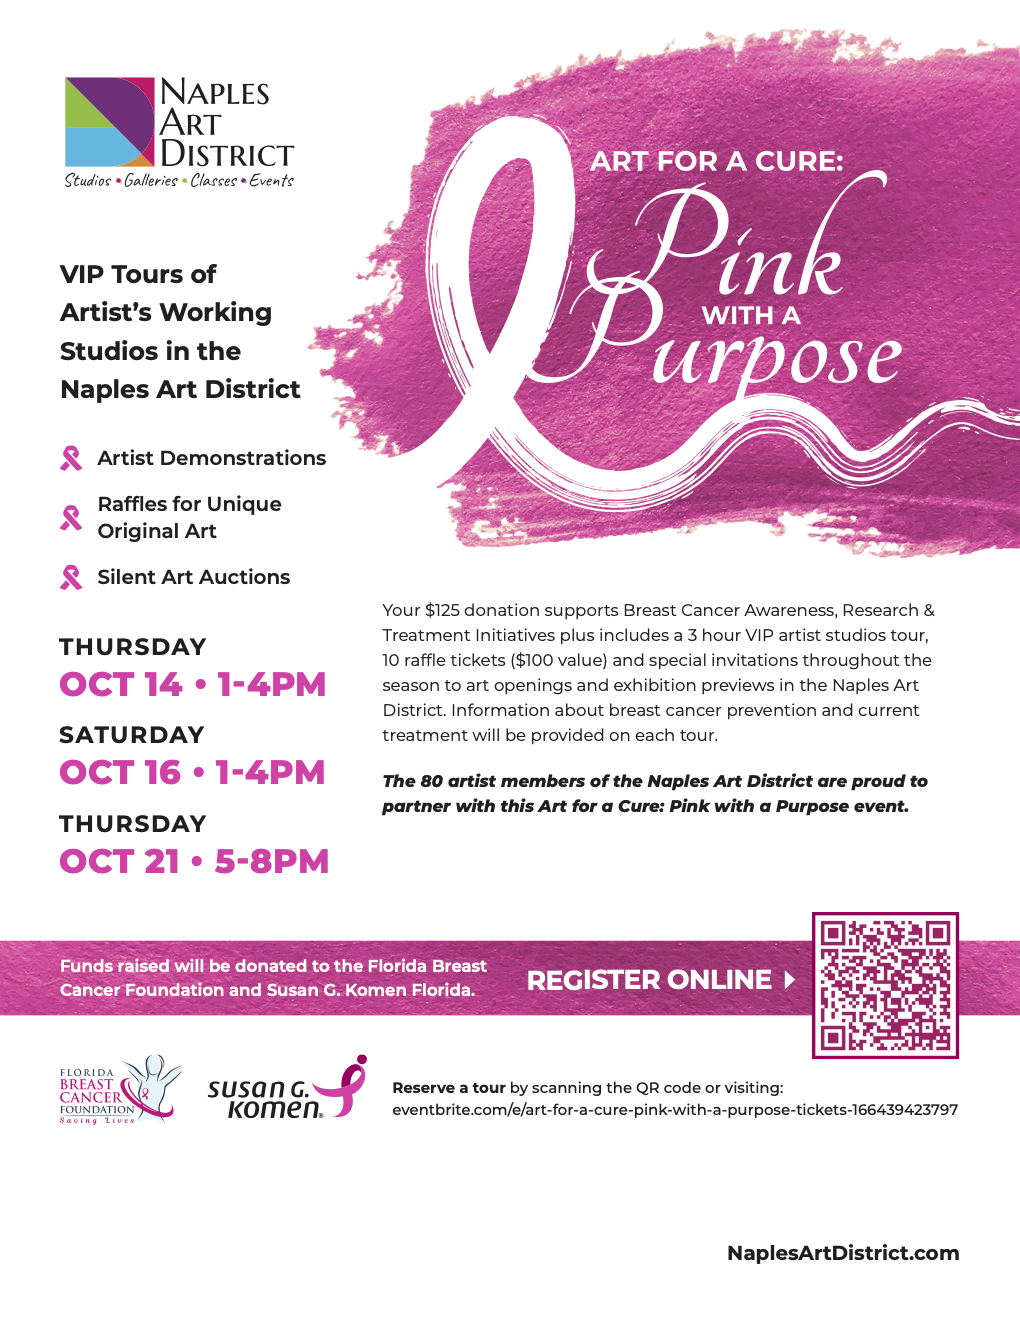 Art For A Cure: Pink With a Purpose